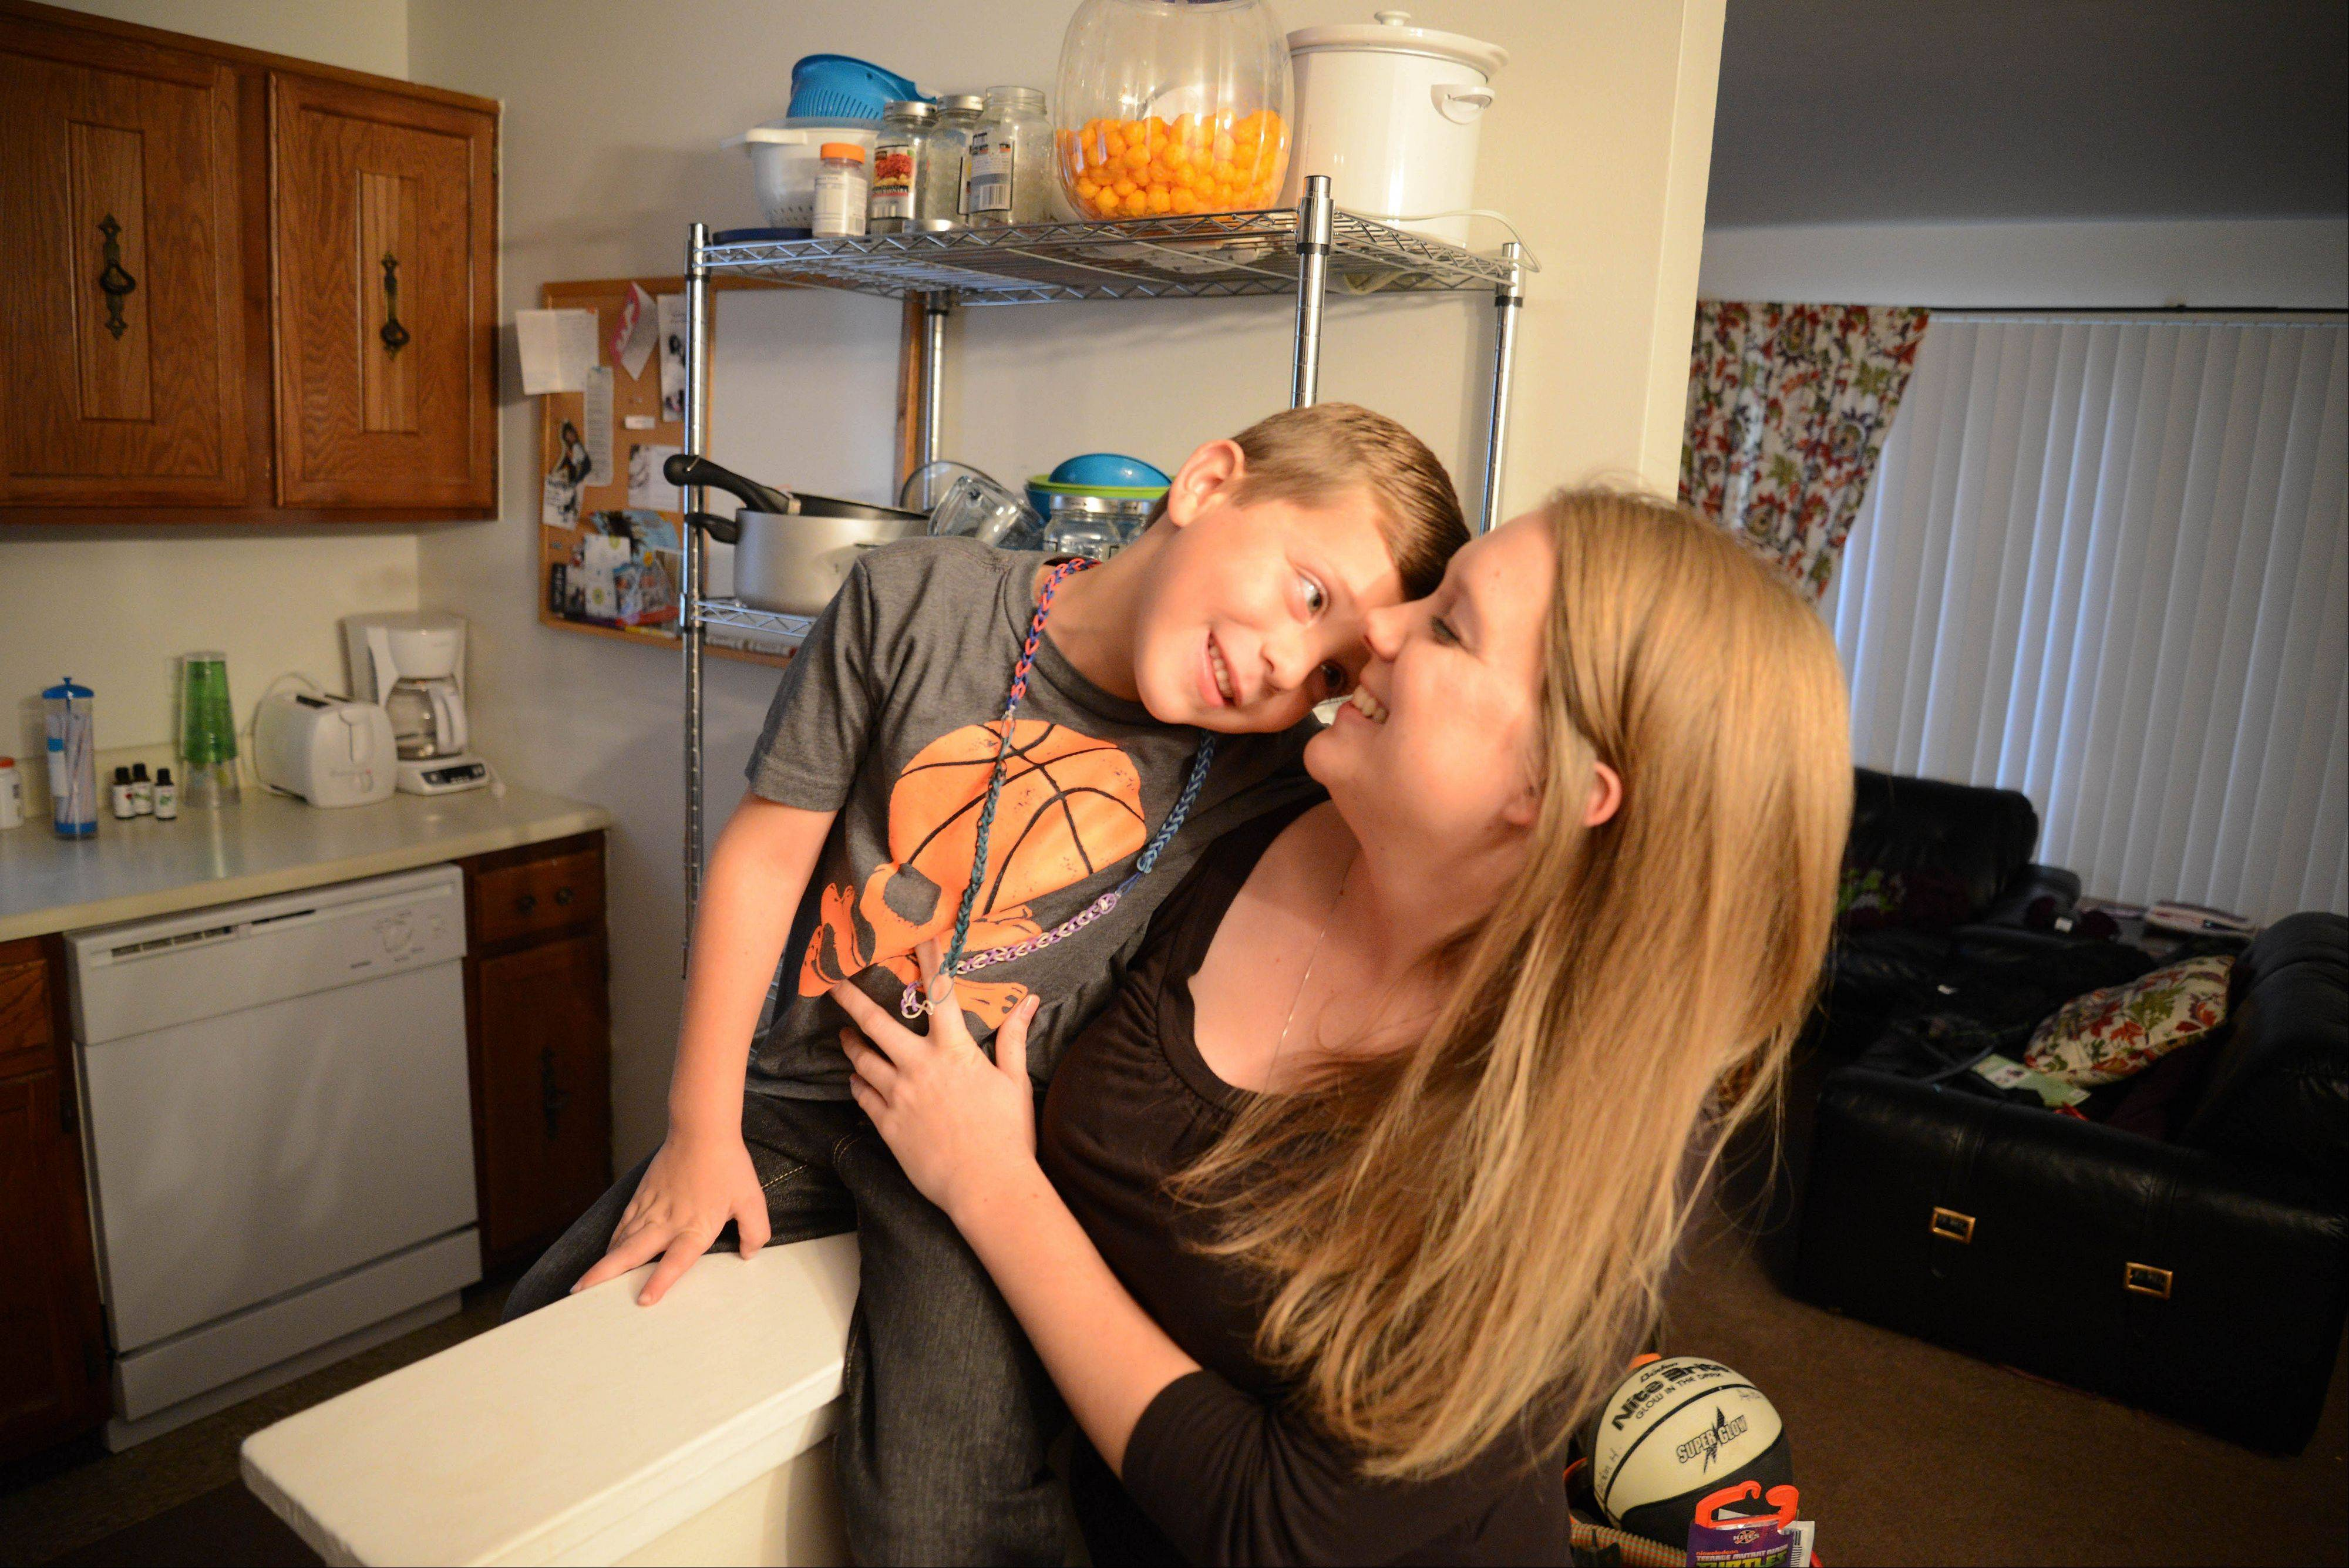 The help that Bridge Communities provided to Alecia Hannemann helped her get a Carol Stream apartment and build up her savings. She says the most important thing is that her 6-year-old son, Aidan, is happy.